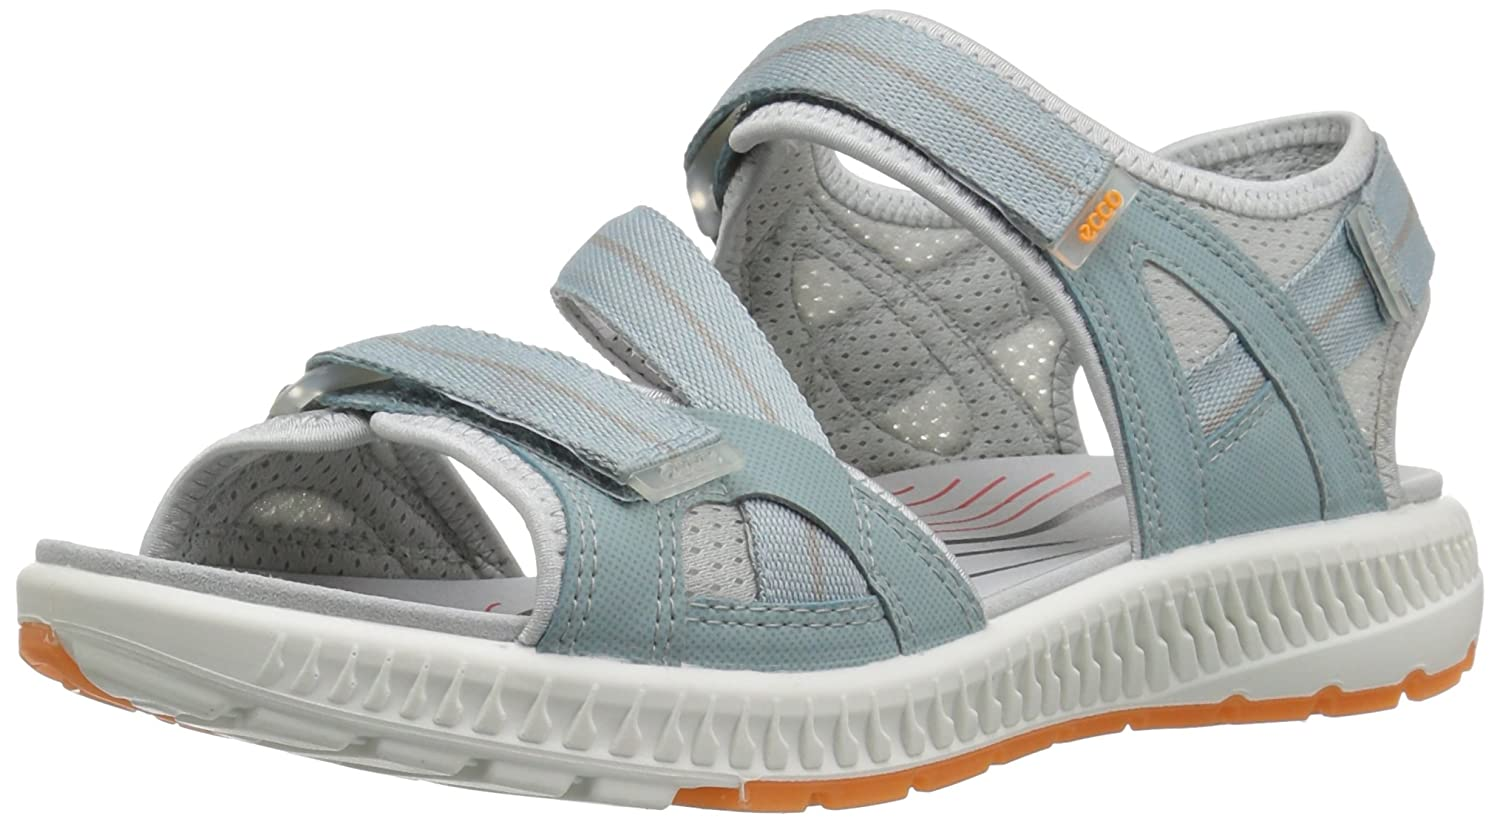 ECCO Women's Terra 3S Athletic Sandal B072L5PTKR 41 EU/10-10.5 M US|Arona/Papaya